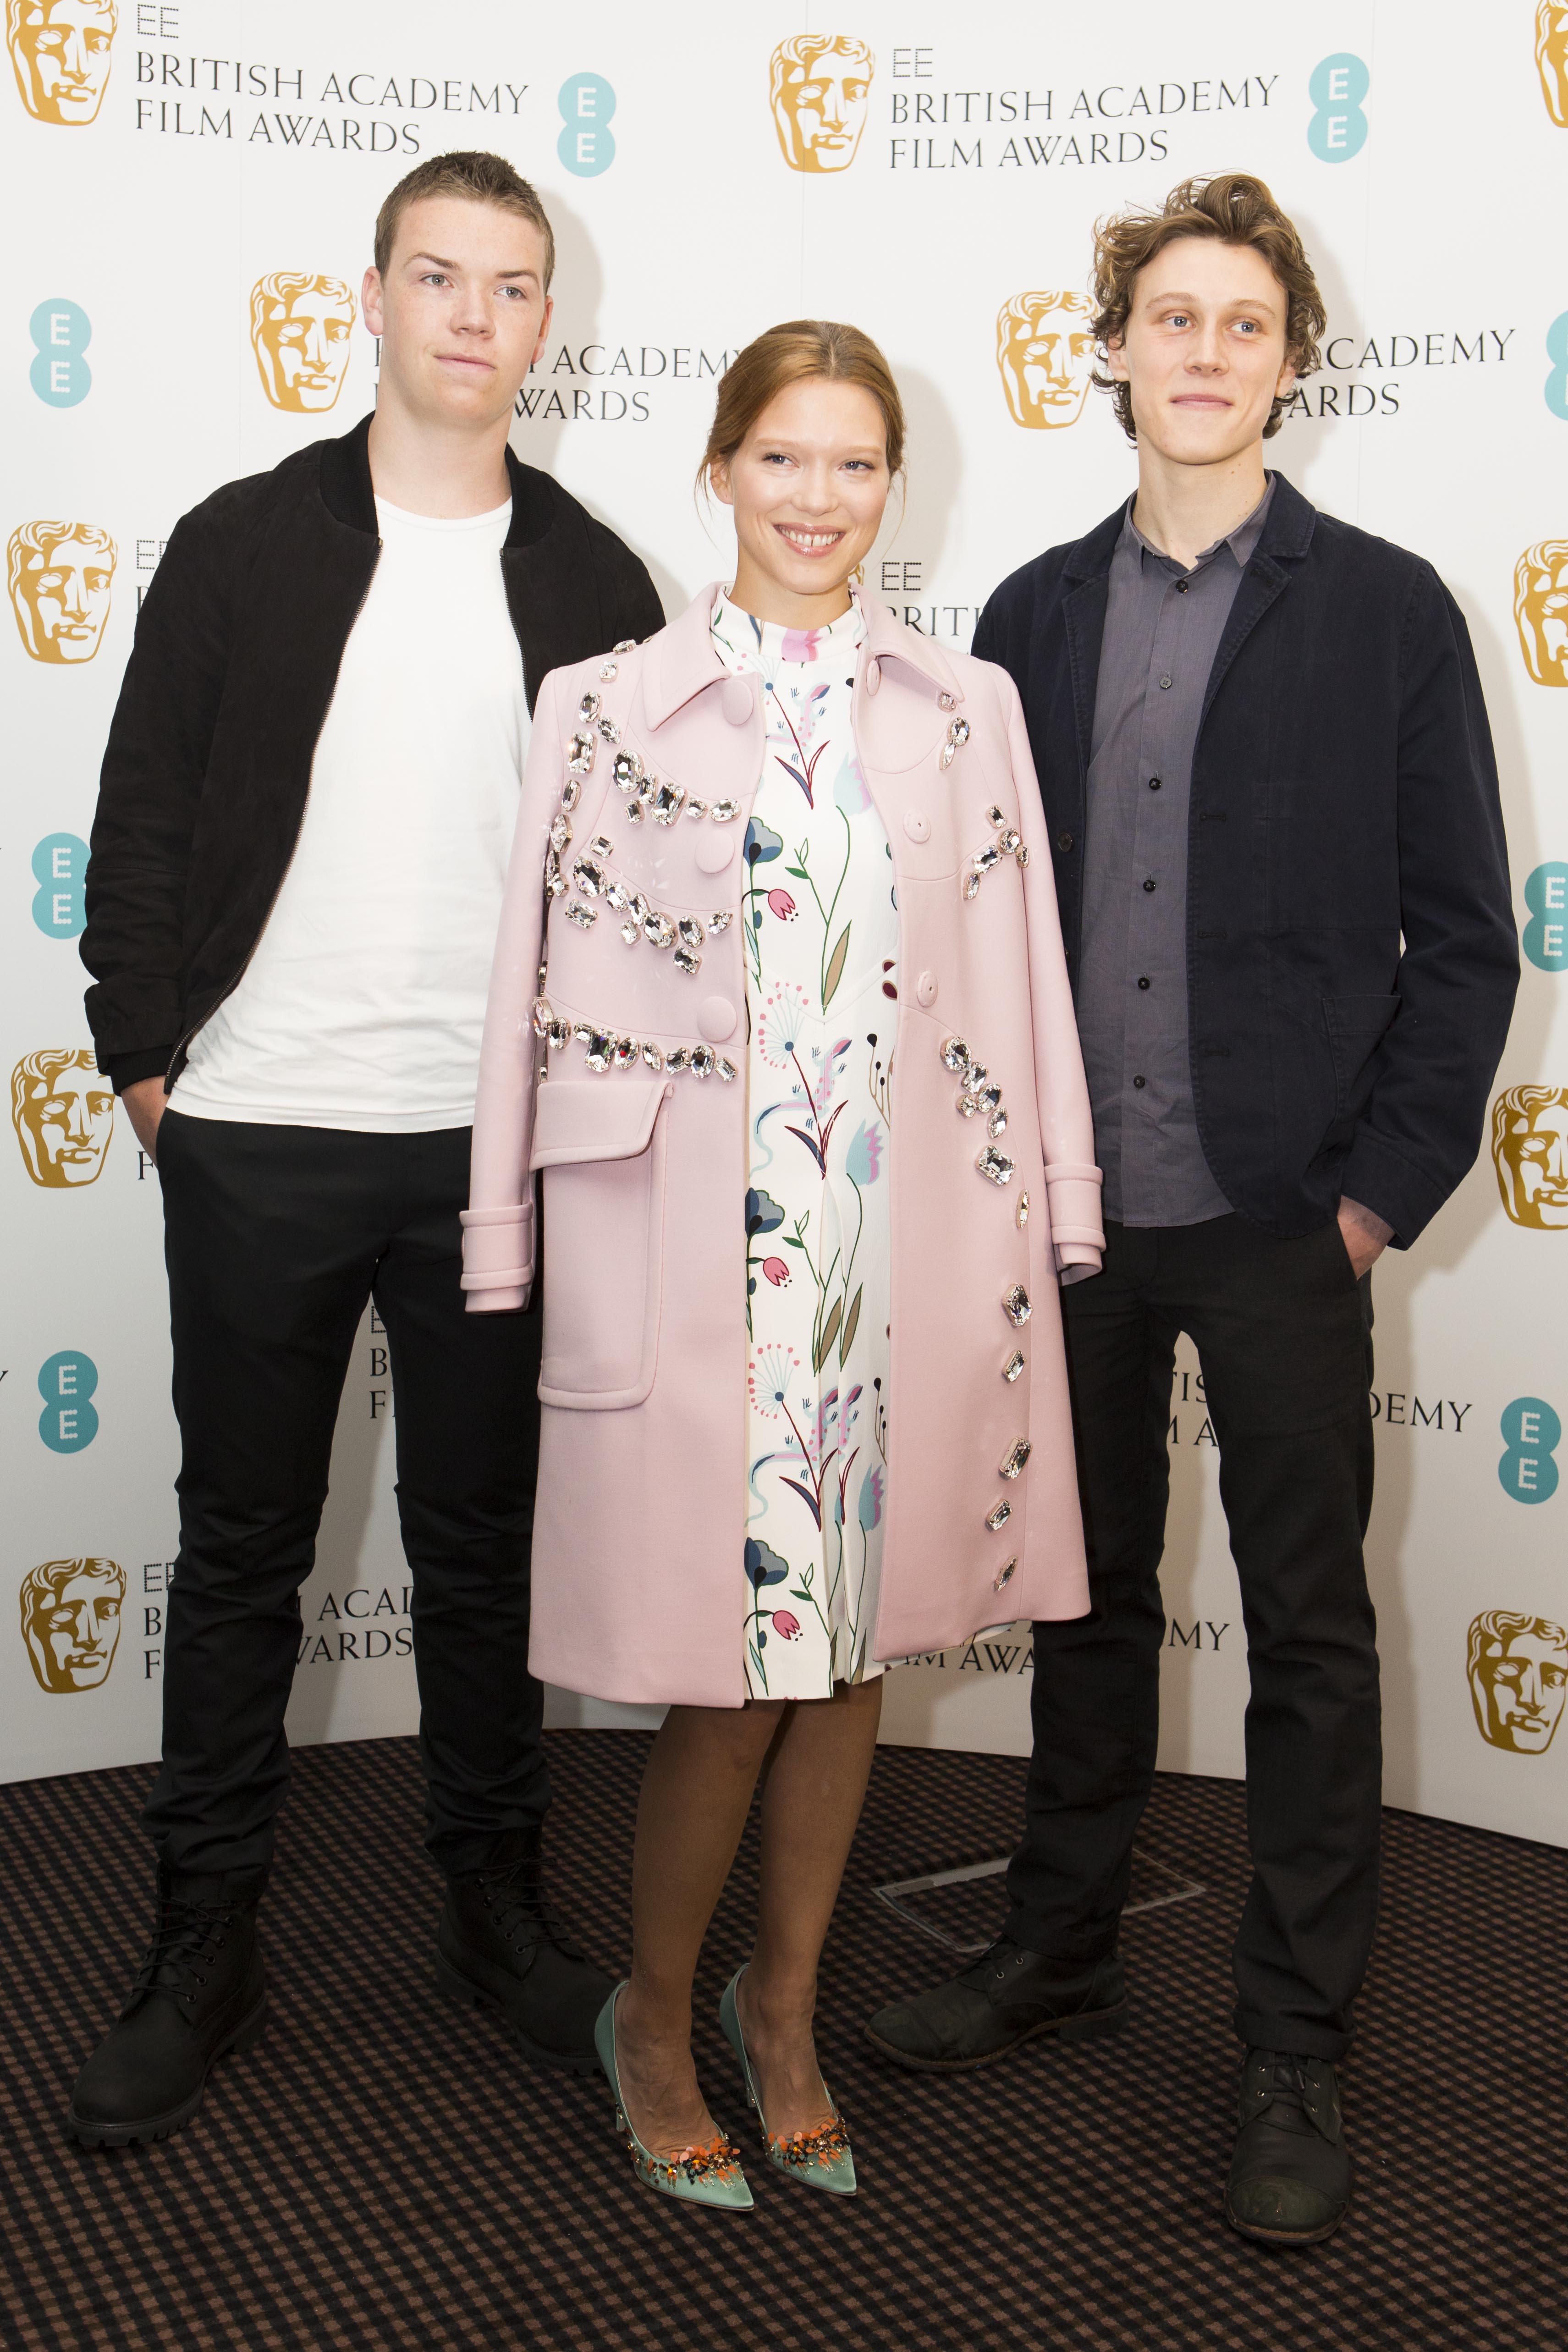 BAFTA EE Rising Star: Léa Seydoux and Will Poulter among 2014 nominees